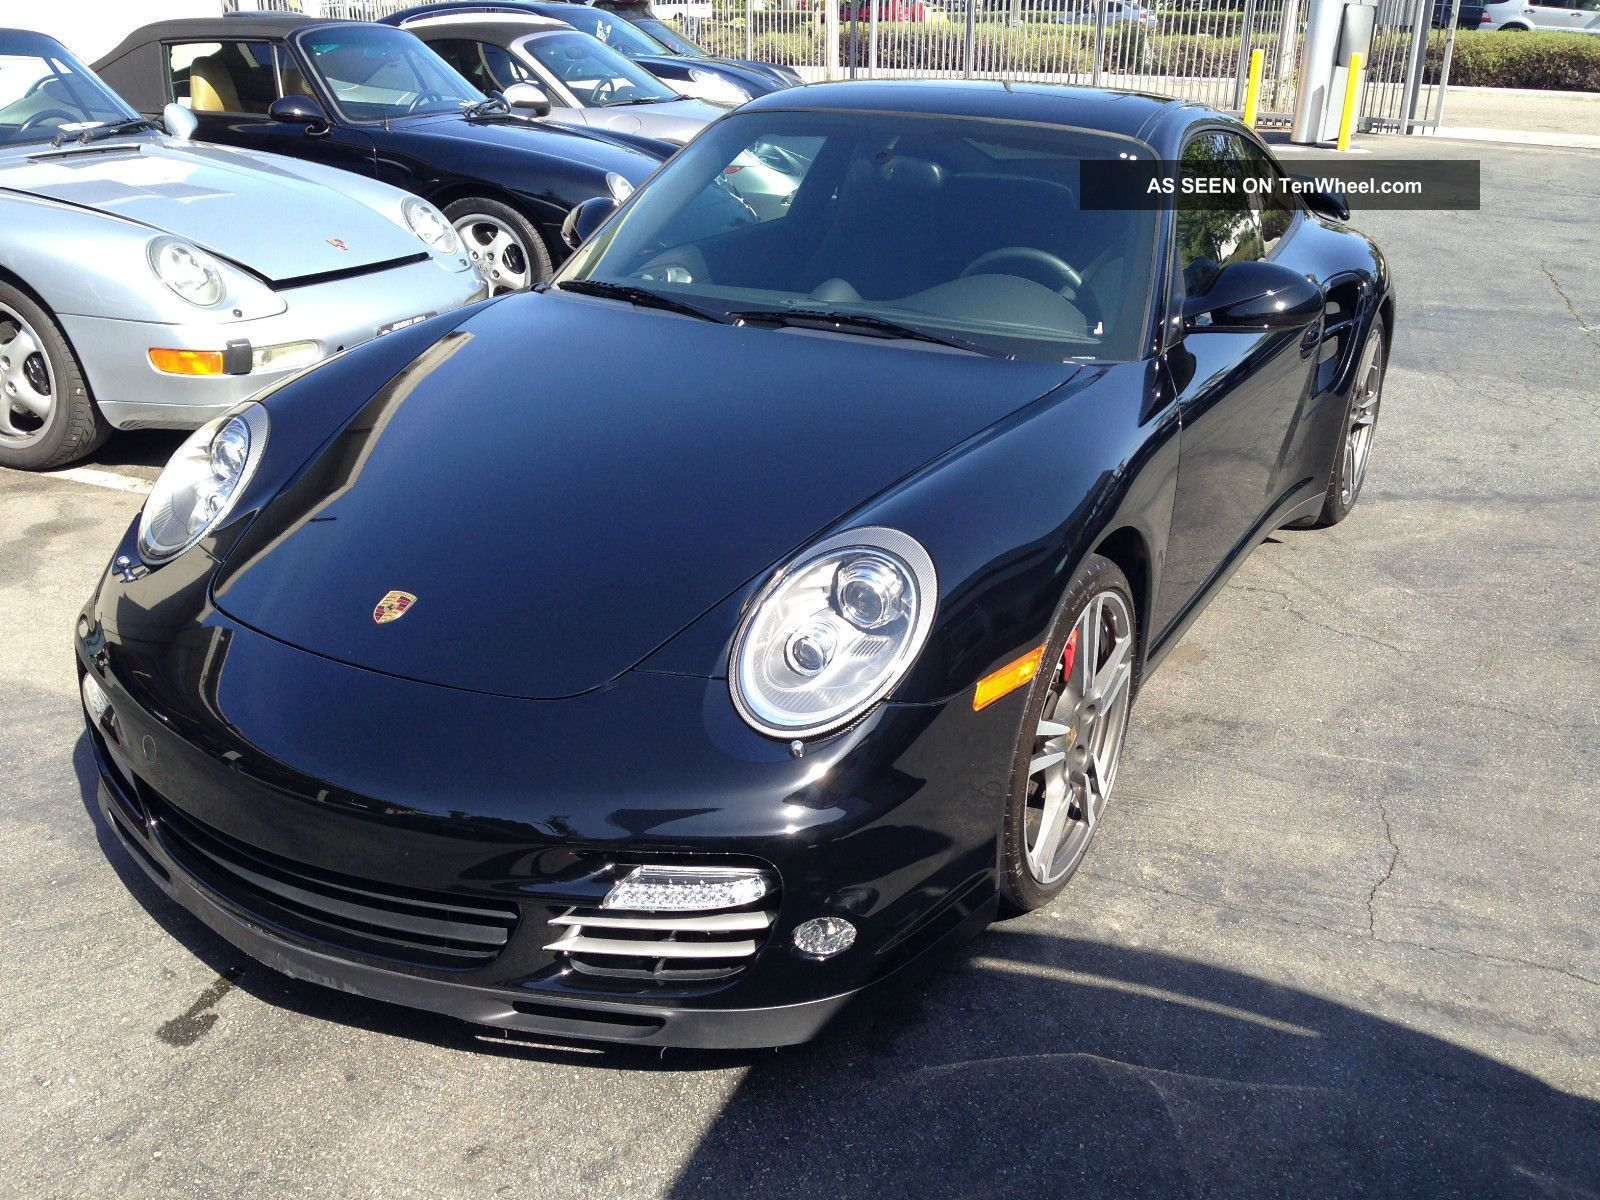 2013 Porsche 911 Turbo 911 photo